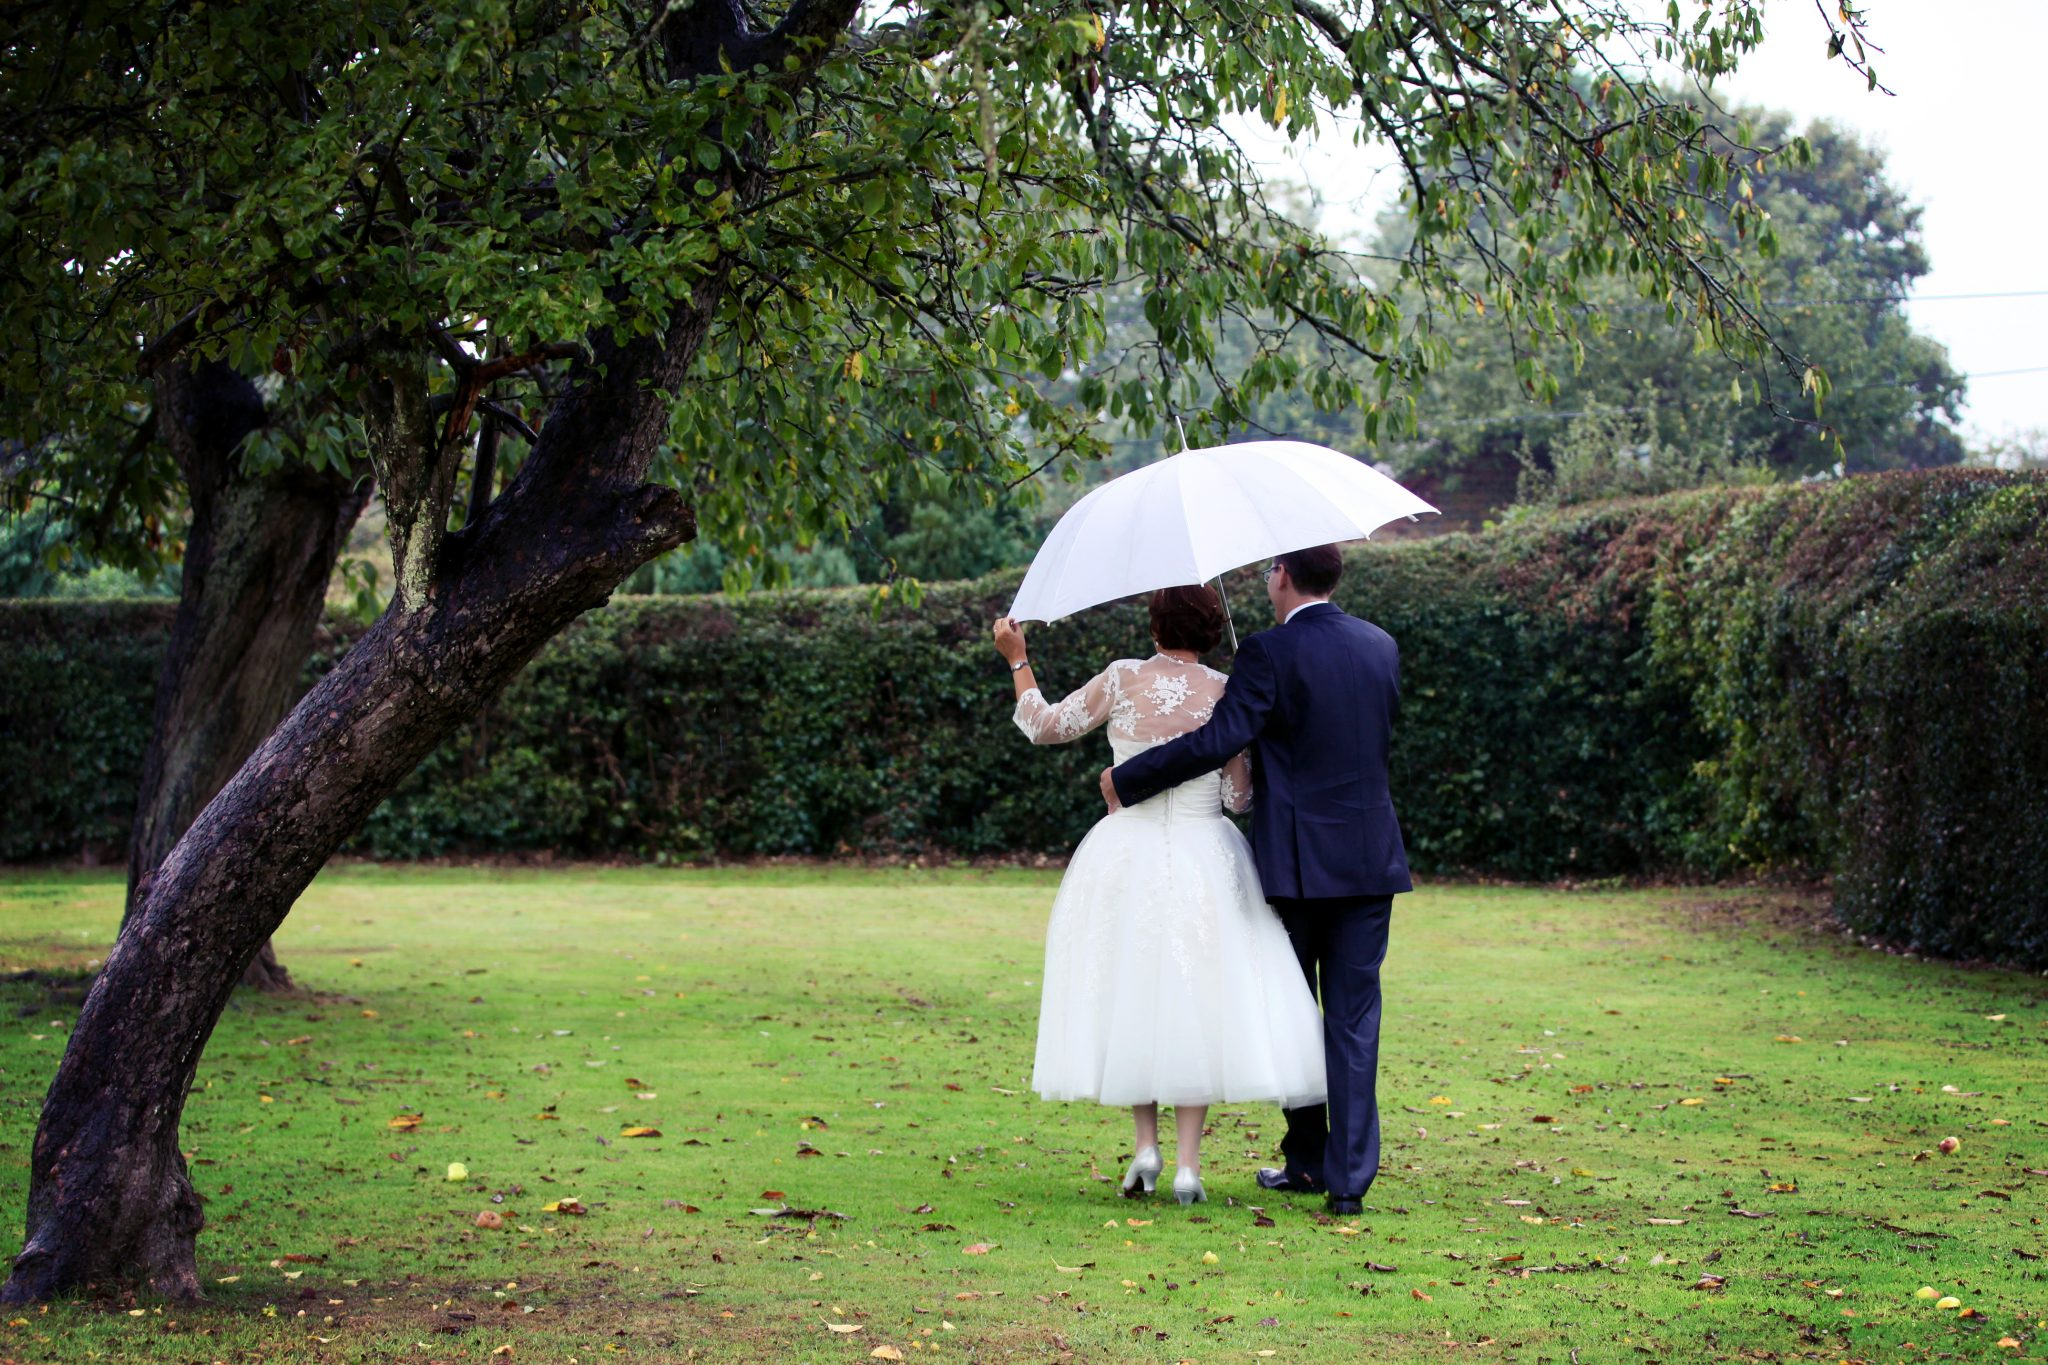 bride and groom, rainy day, Bedford Arms.